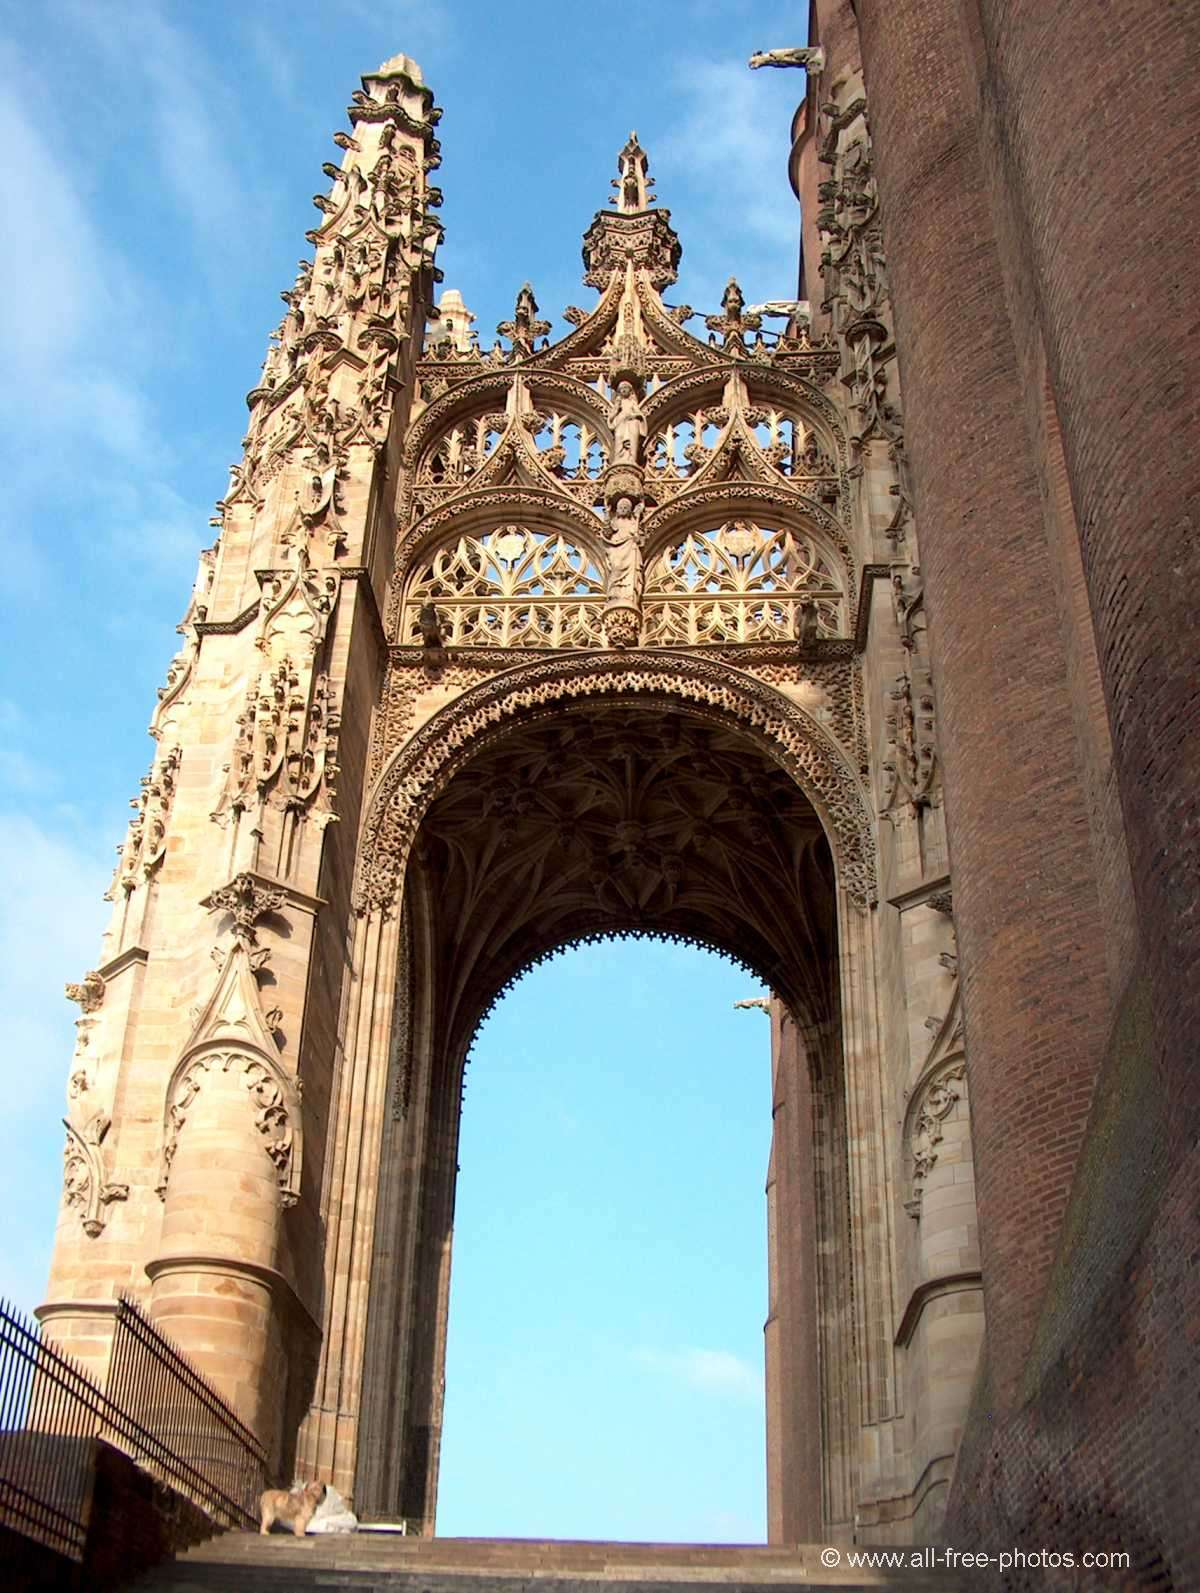 Porch of the Ste Cécile cathedral - Albi - France